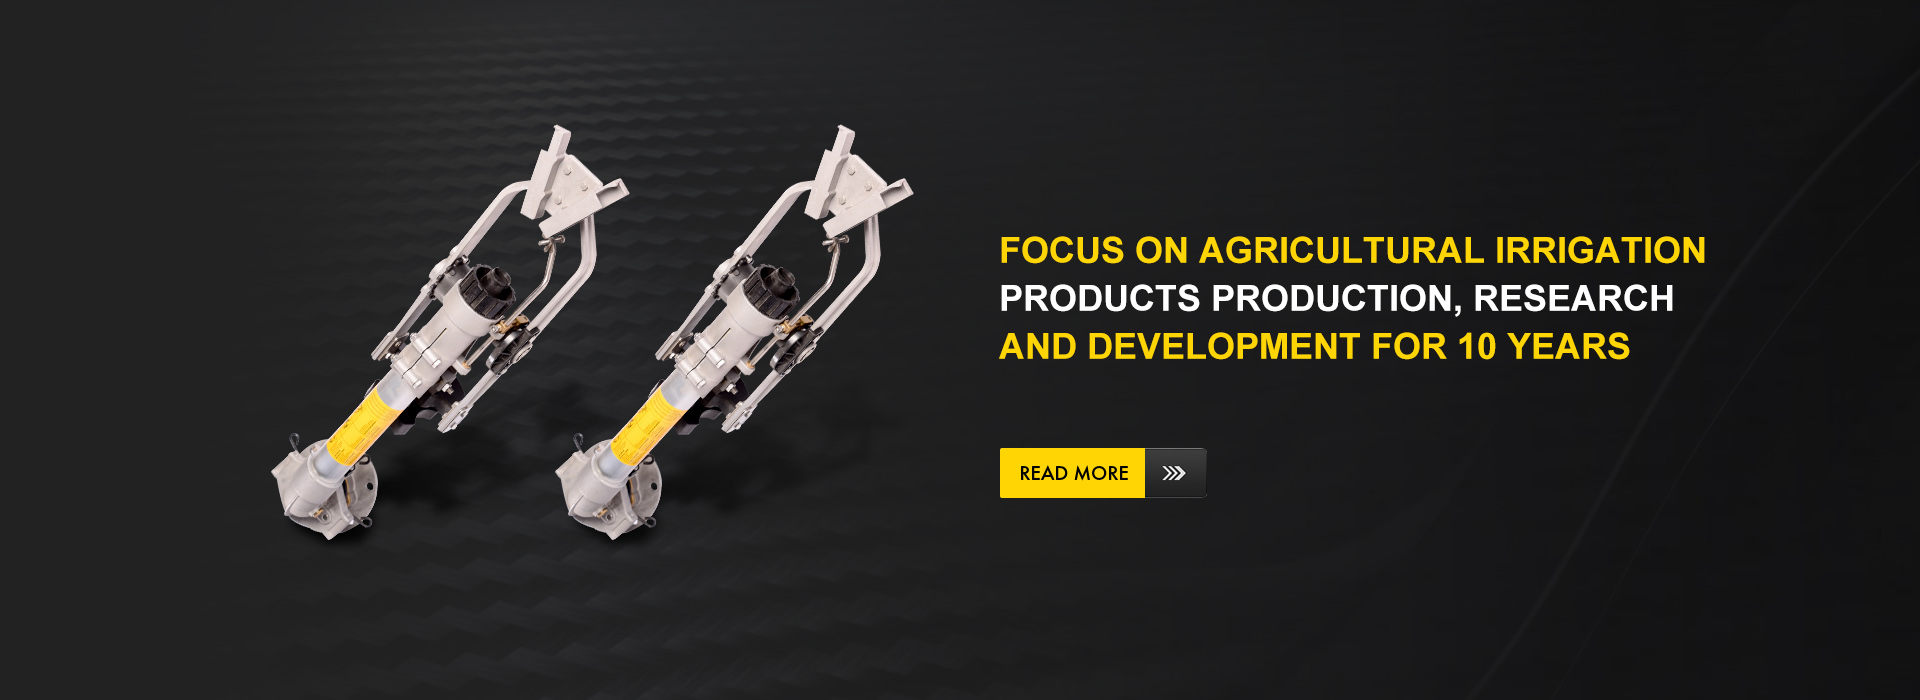 Focus on agricultural irrigation products production,  research and development for 10 years